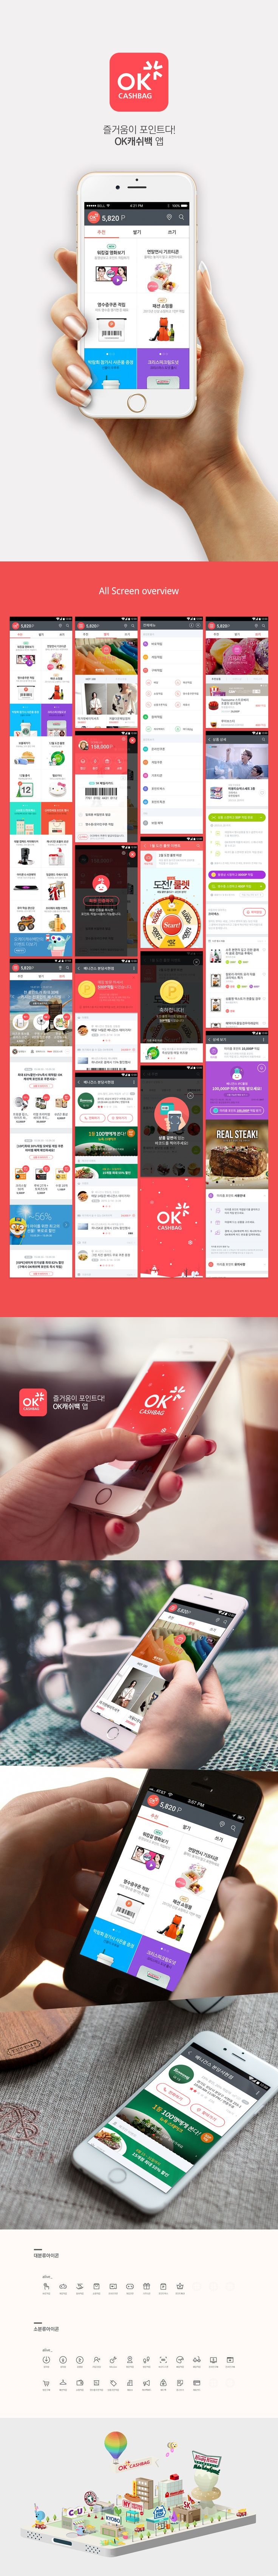 OK Cashbag App UX Design on Behance